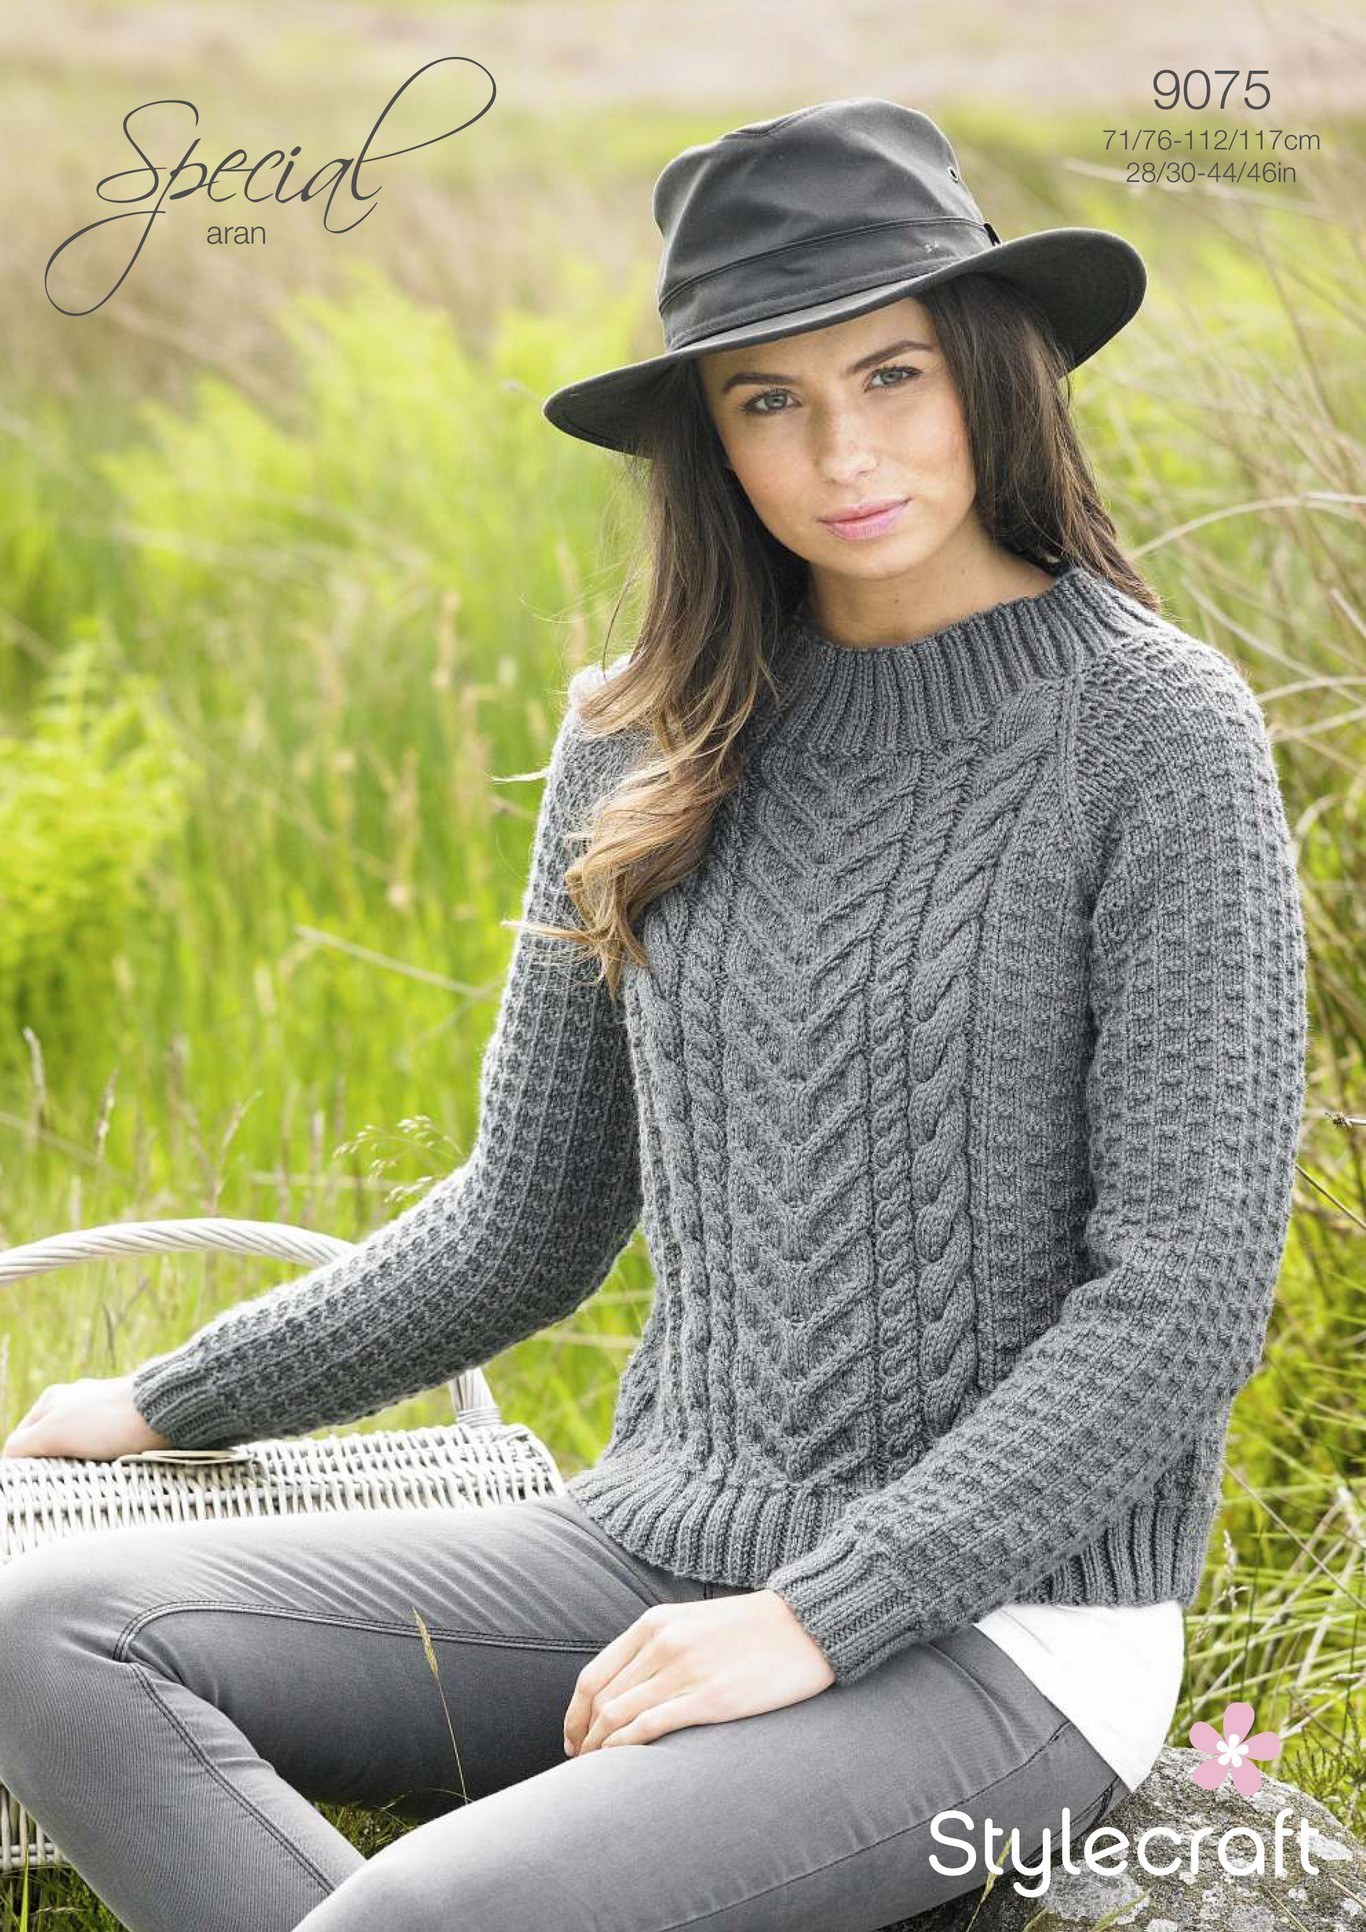 Sweater in Stylecraft Special Aran